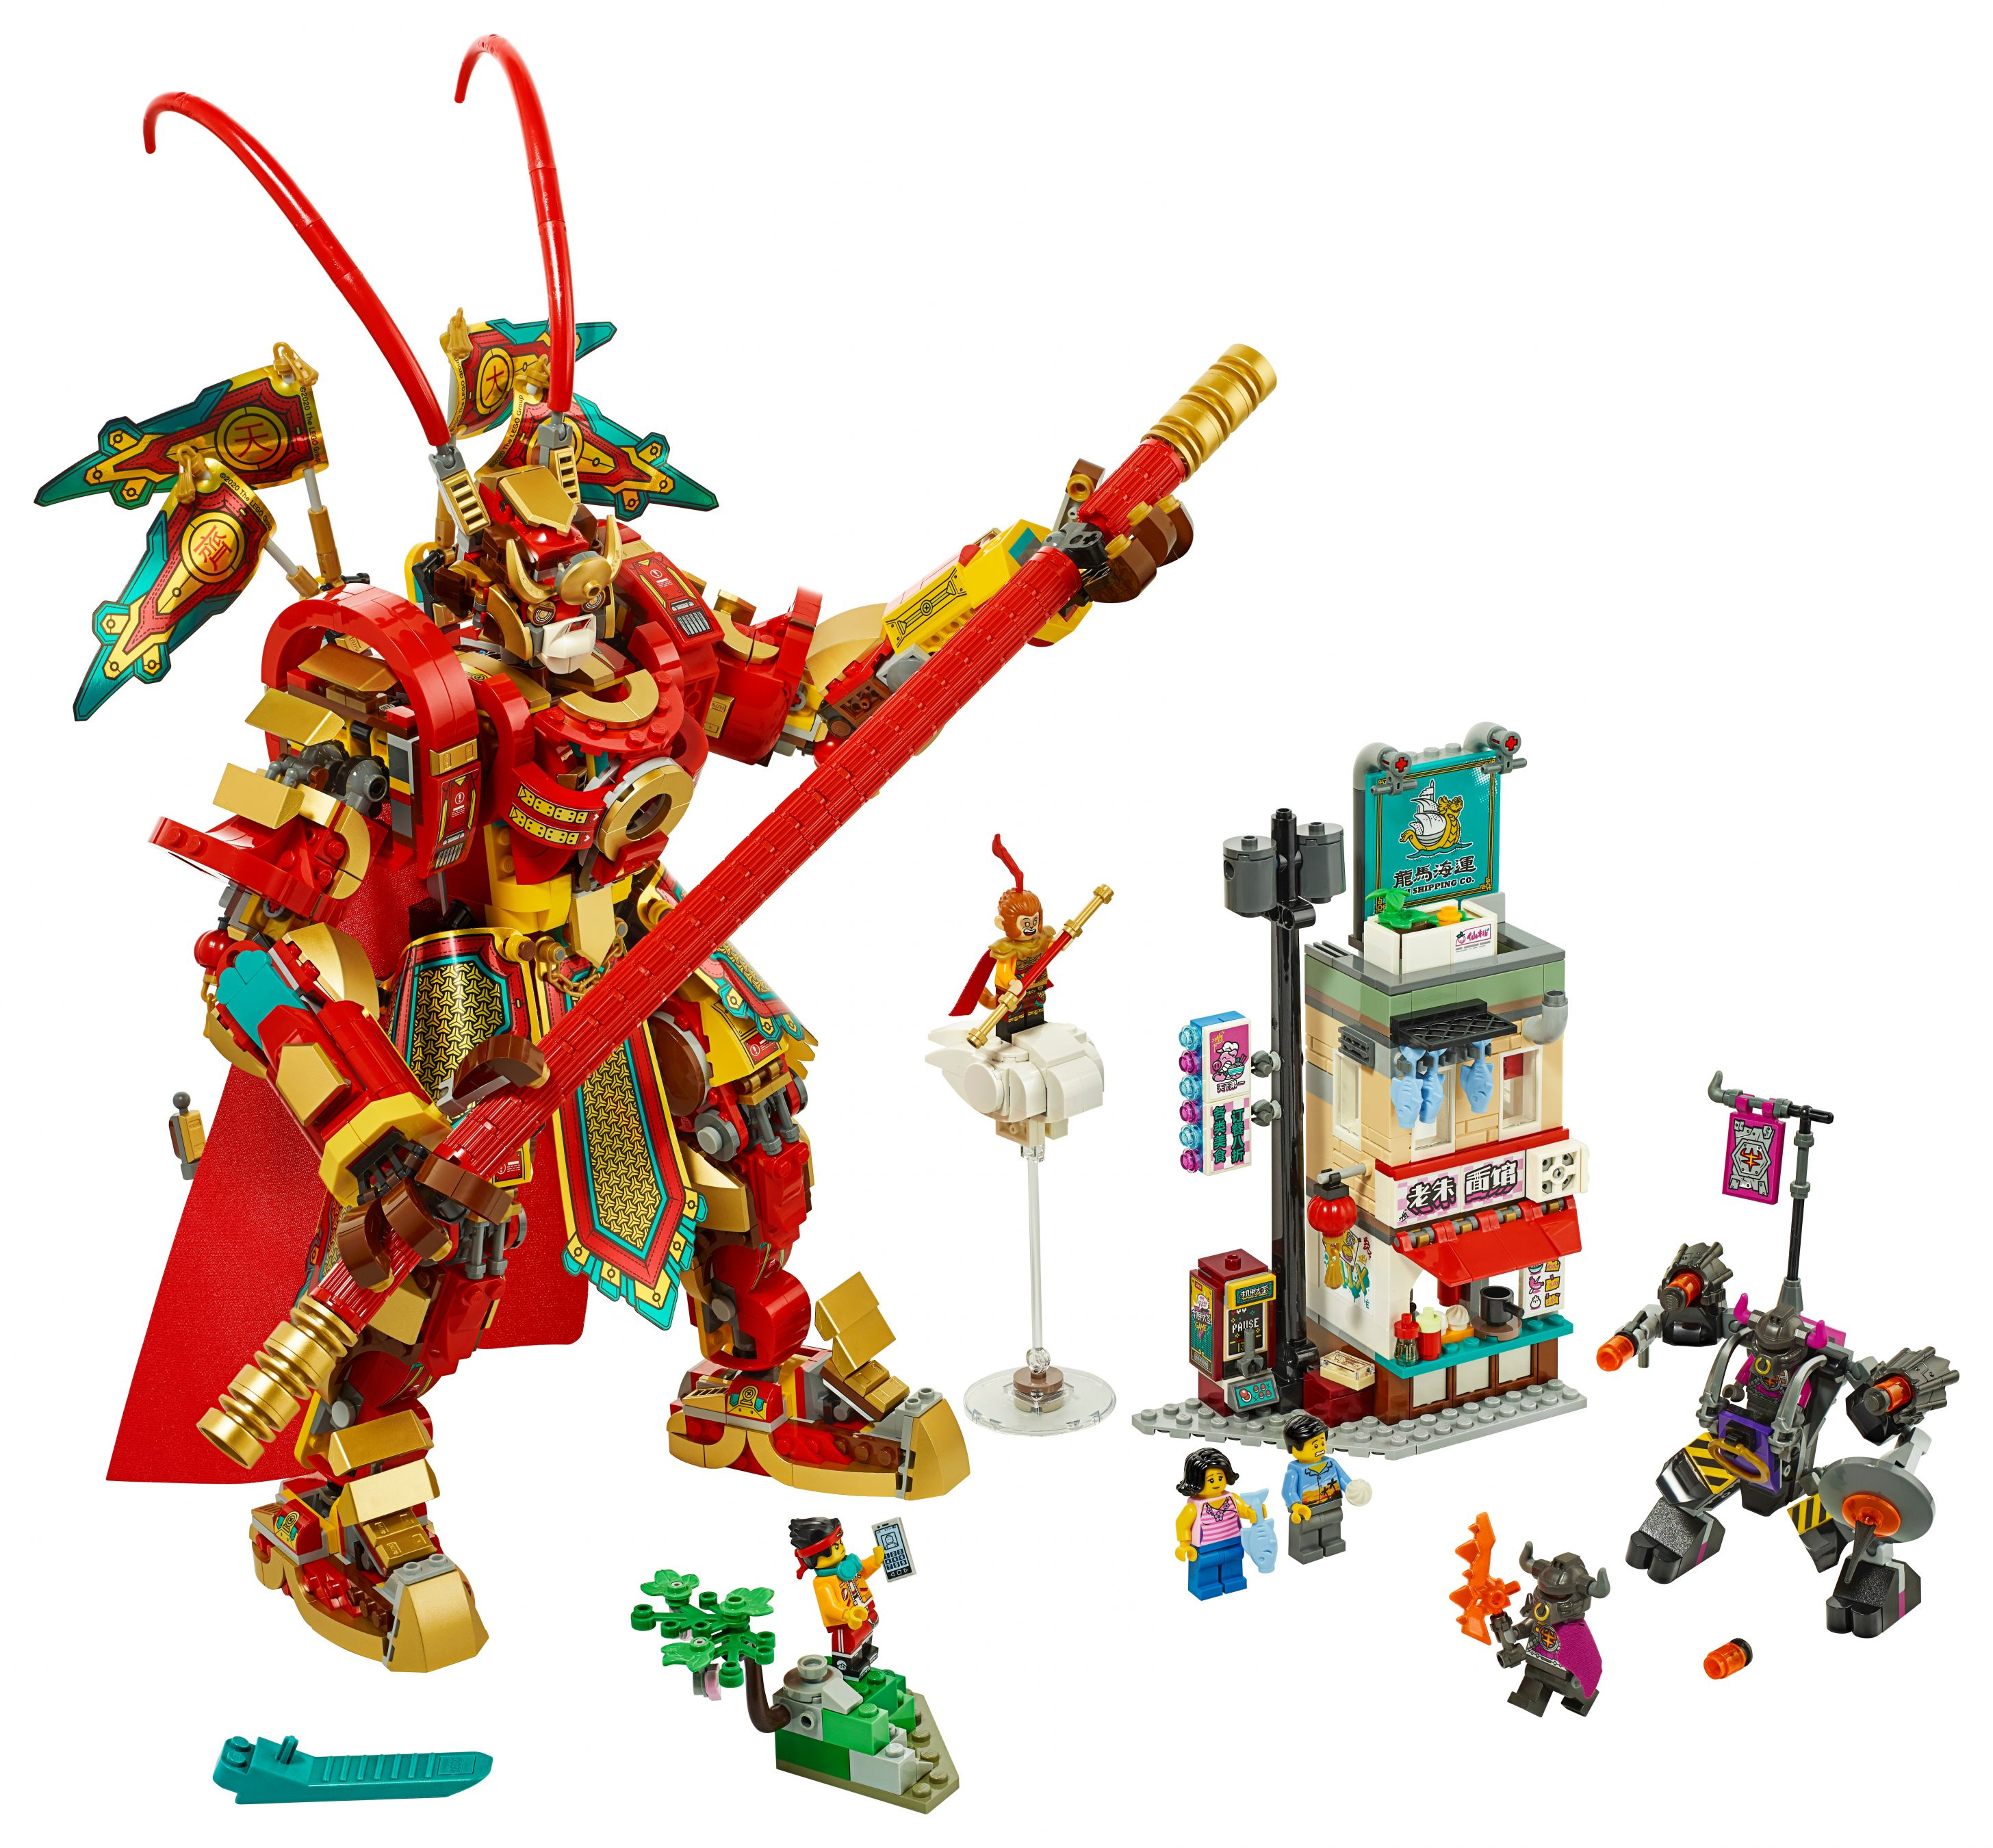 LEGO Monkie Kid 80012 Monkey King Mech